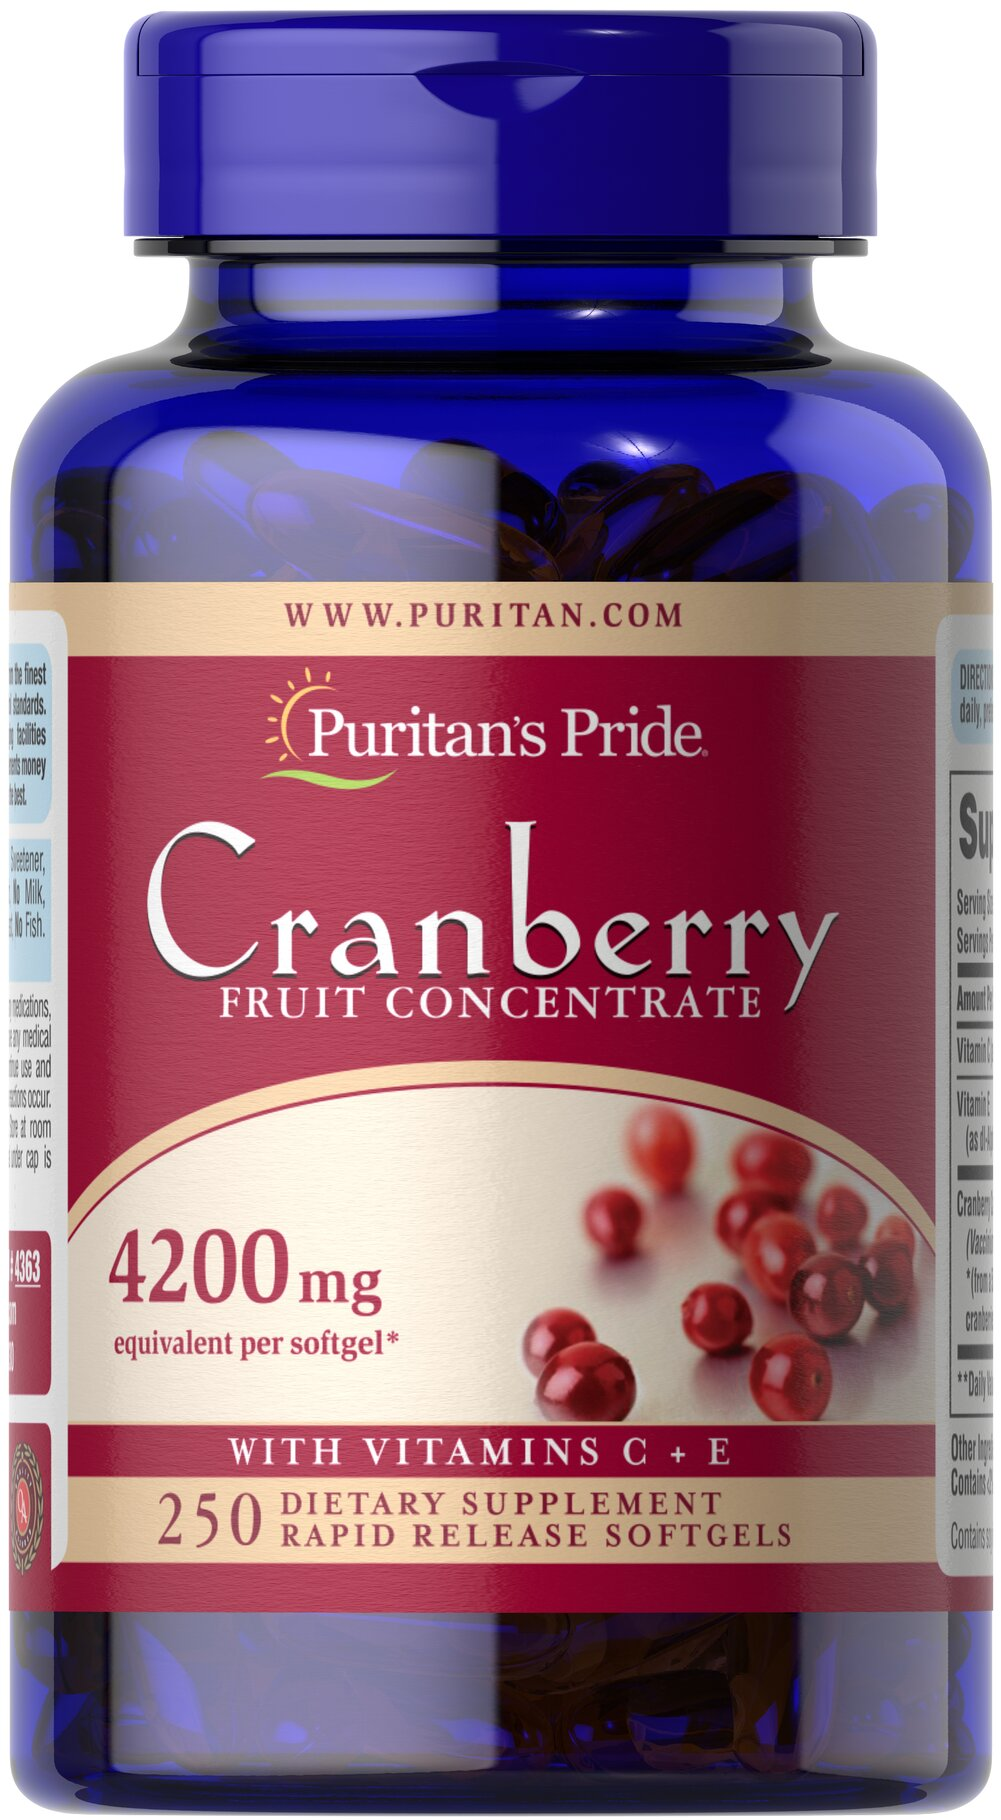 Cranberry Fruit Concentrate with C & E 4200 mg <p>This product has the benefits of concentrated cranberry without the unnecessary sugar and calories. Each of our concentrated (4200 mg) Cranberry softgels provide the equivalent of (8400 mg) of fresh cranberries plus (40 mg) of Vitamin C and 6 IU of Vitamin E.  Adults can take two softgels 3 times daily, after meals.</p> 250 Softgels 4200 mg $39.99